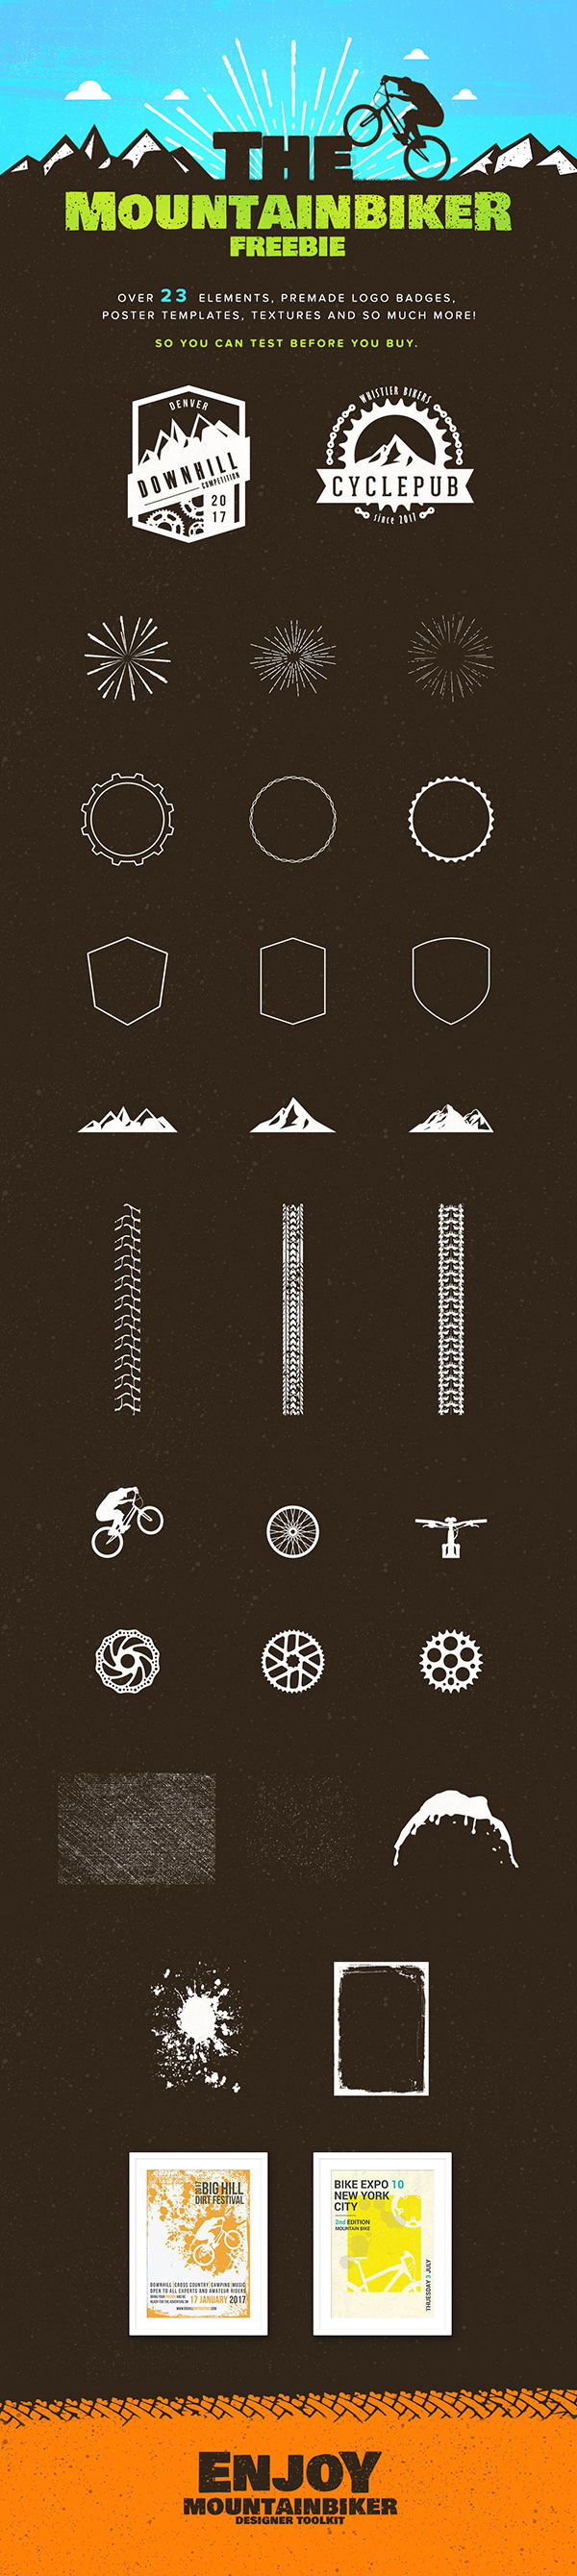 the-mountainbiker-designer-toolkit-600